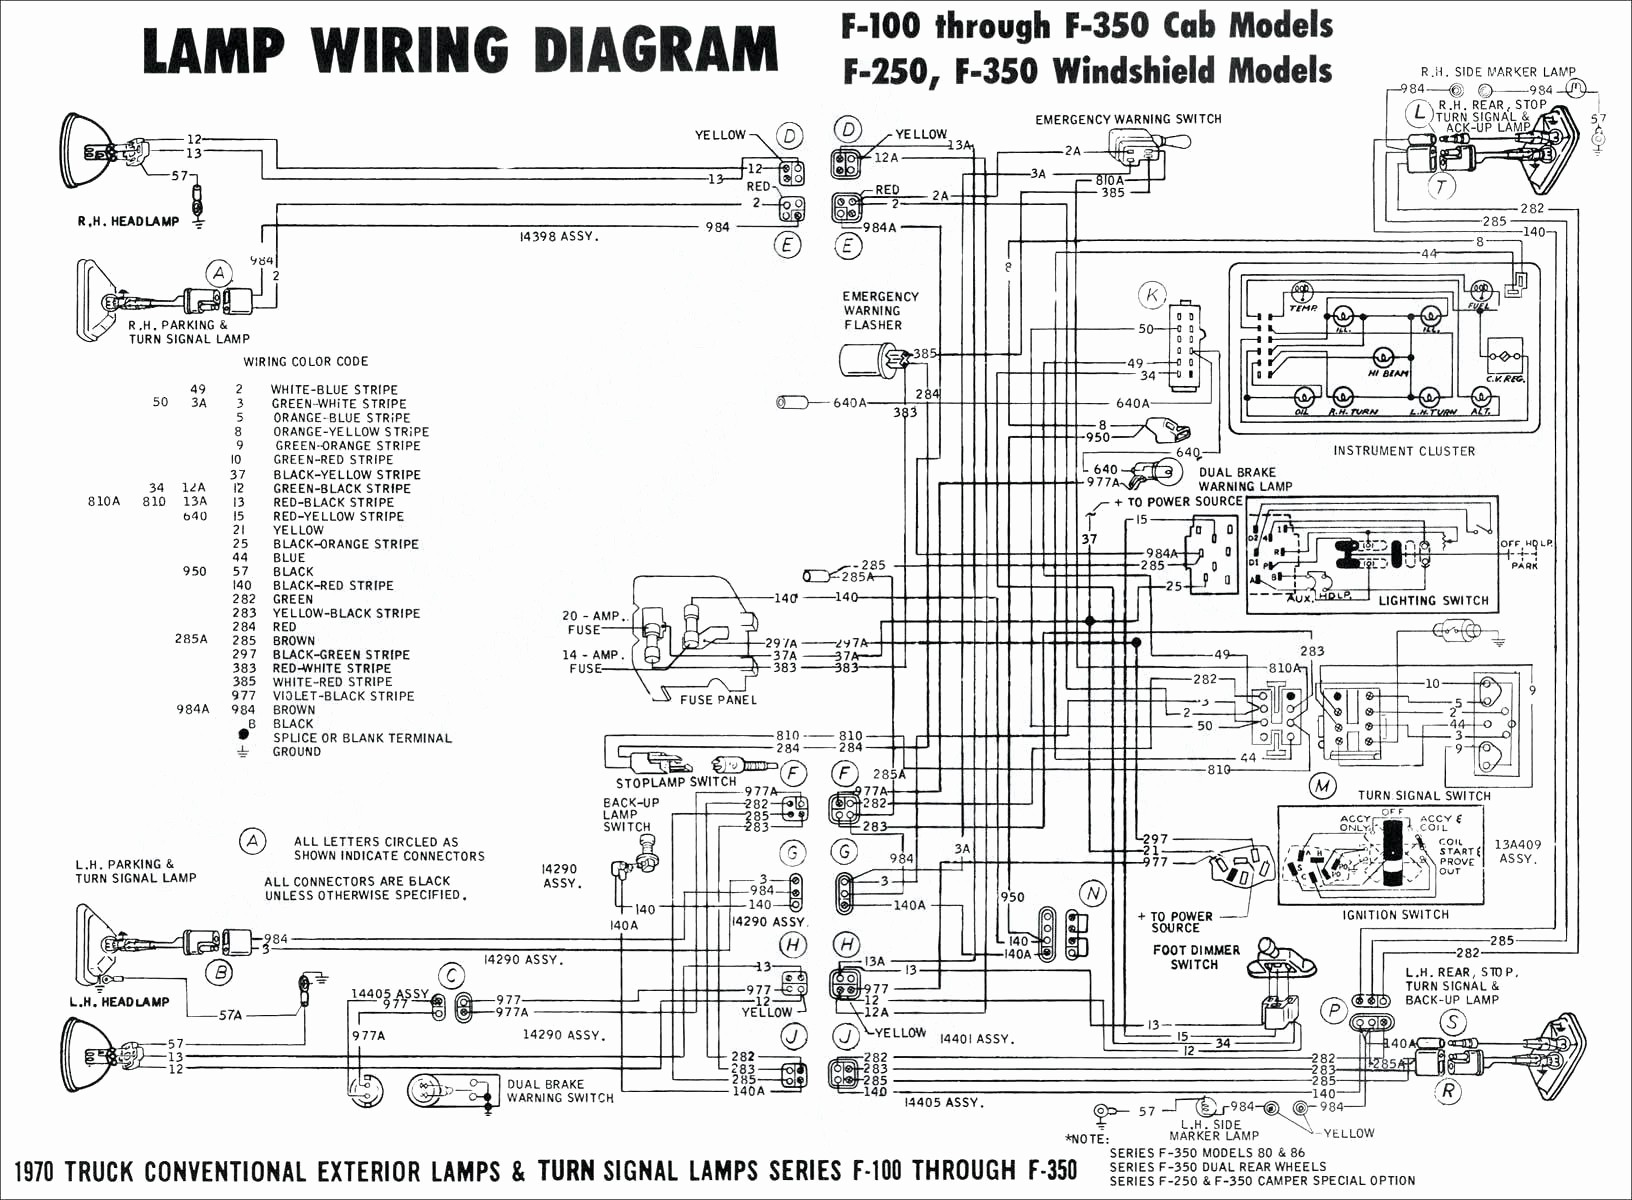 2004 chrysler pacifica amp wiring diagram